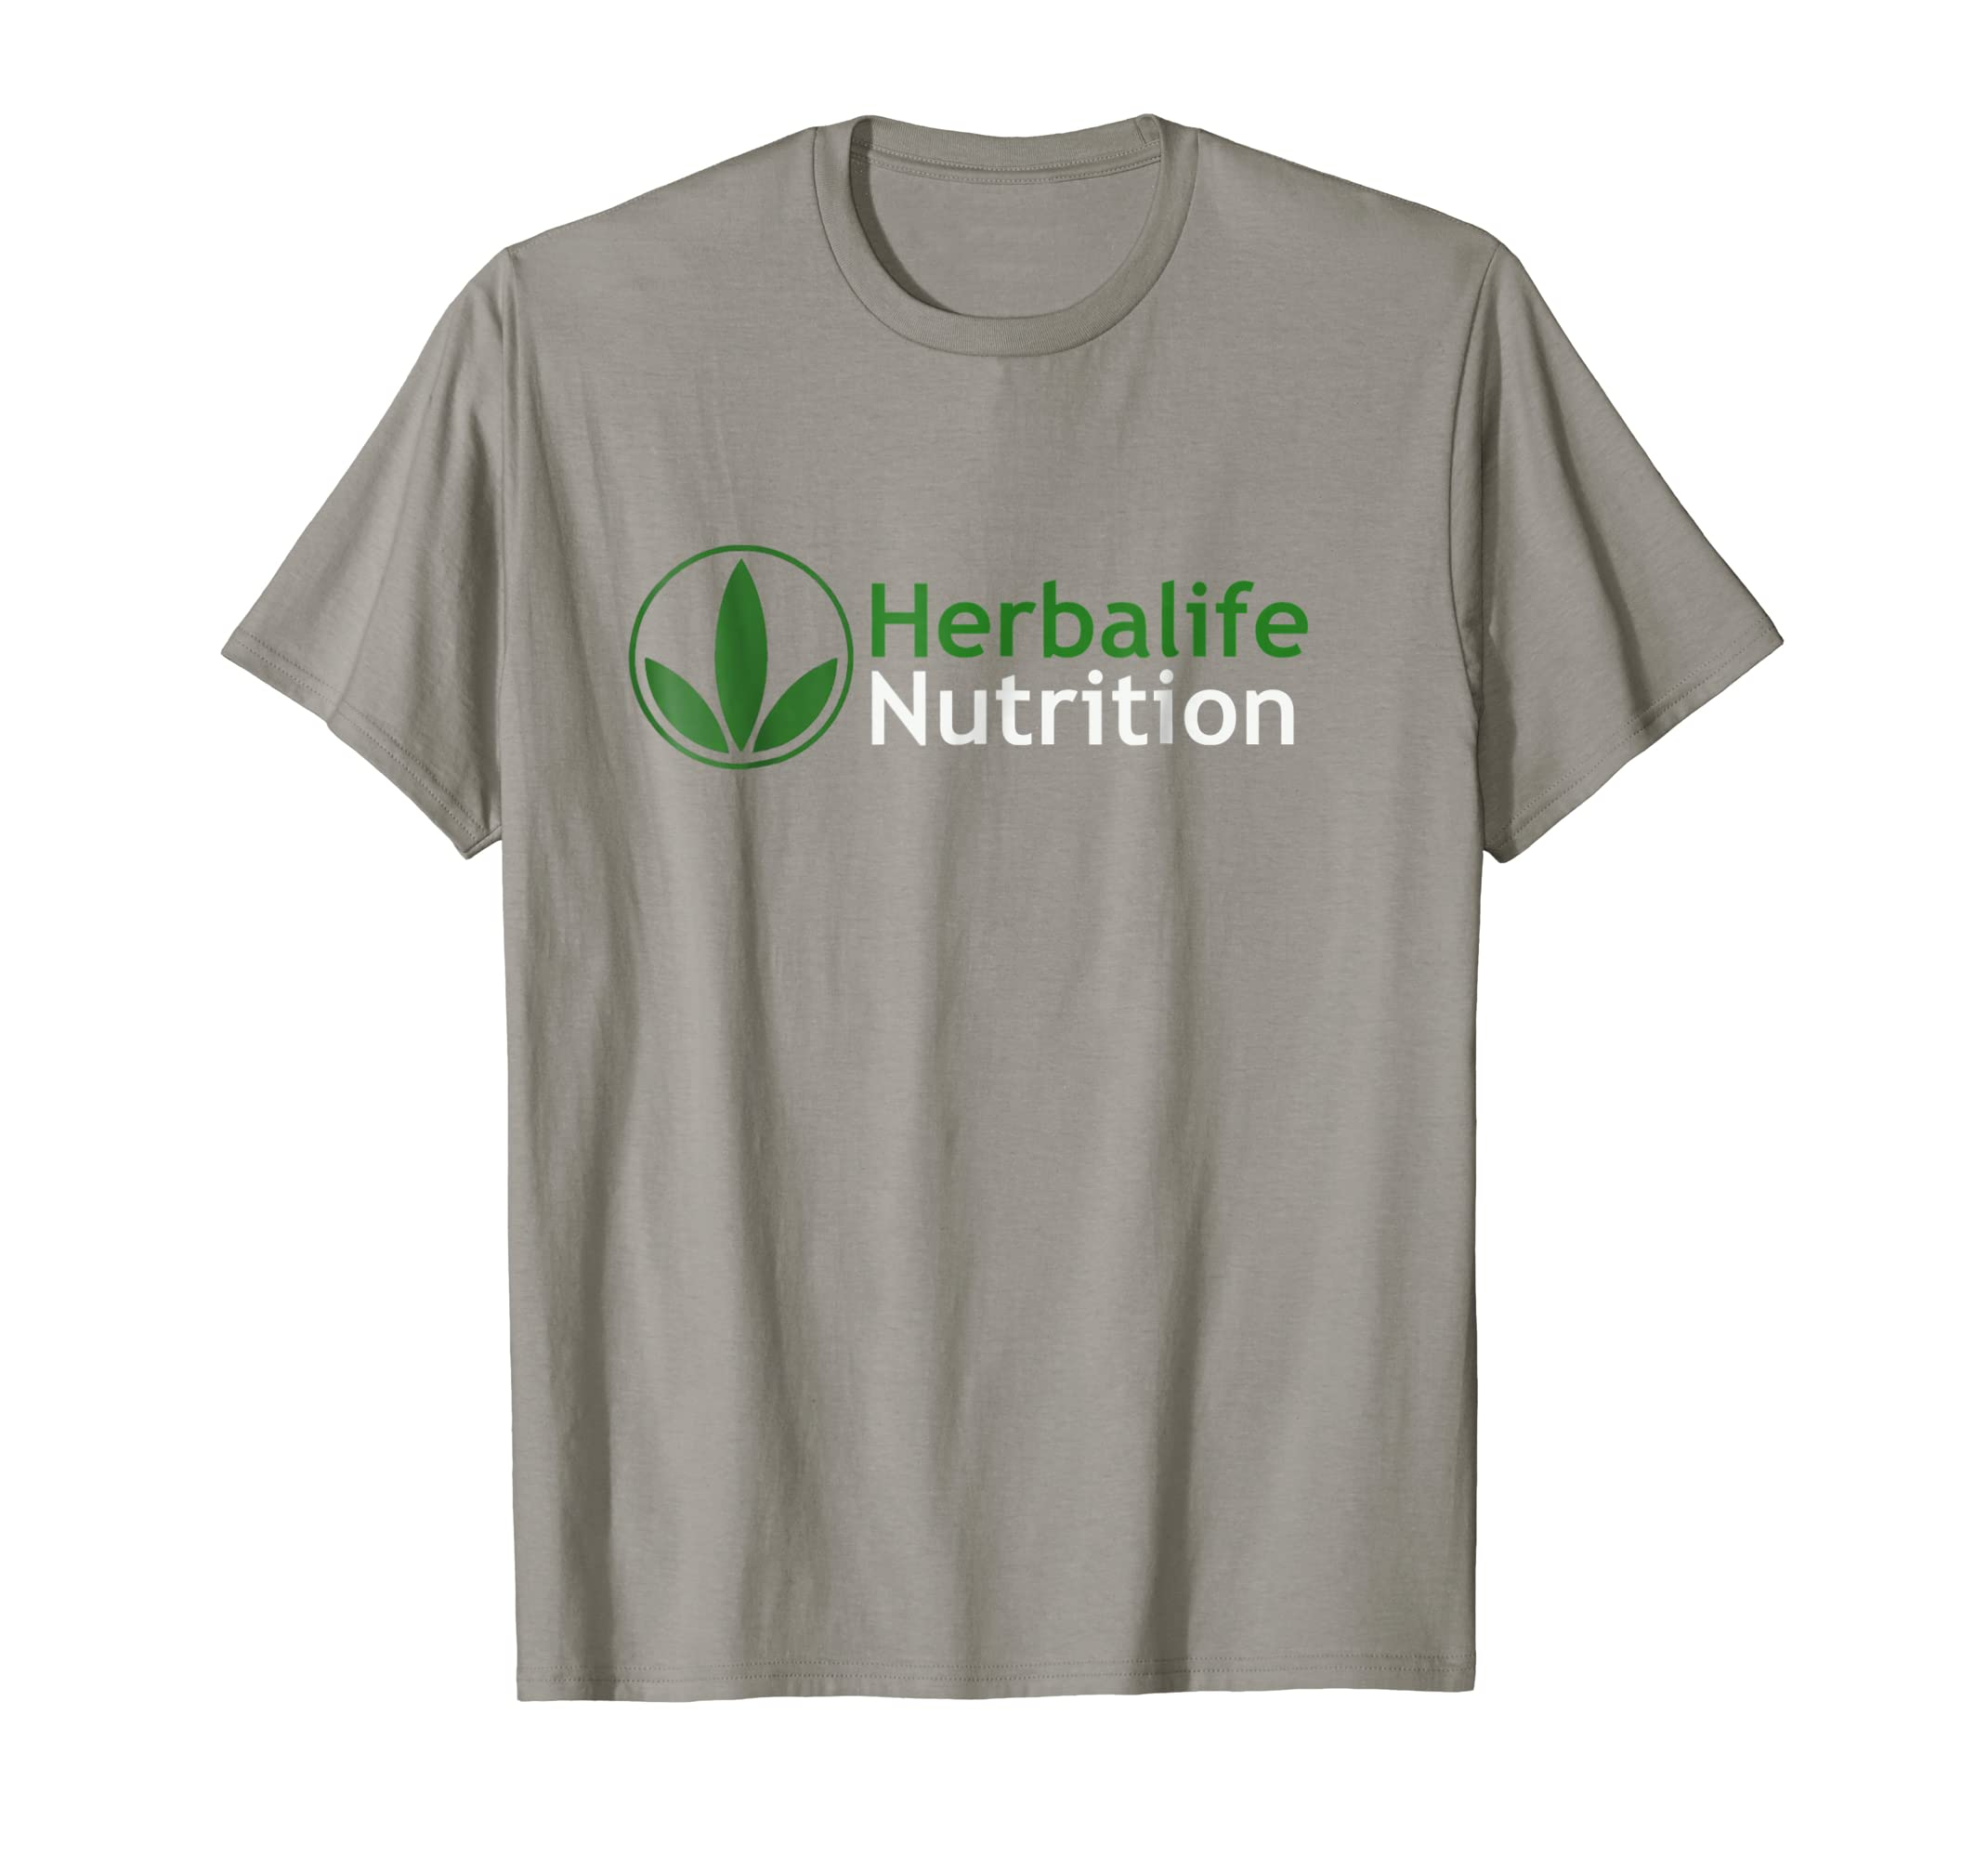 21573422 Amazon.com: Herbalife Nutrition T-Shirt Cool Gift For Men, Women: Clothing